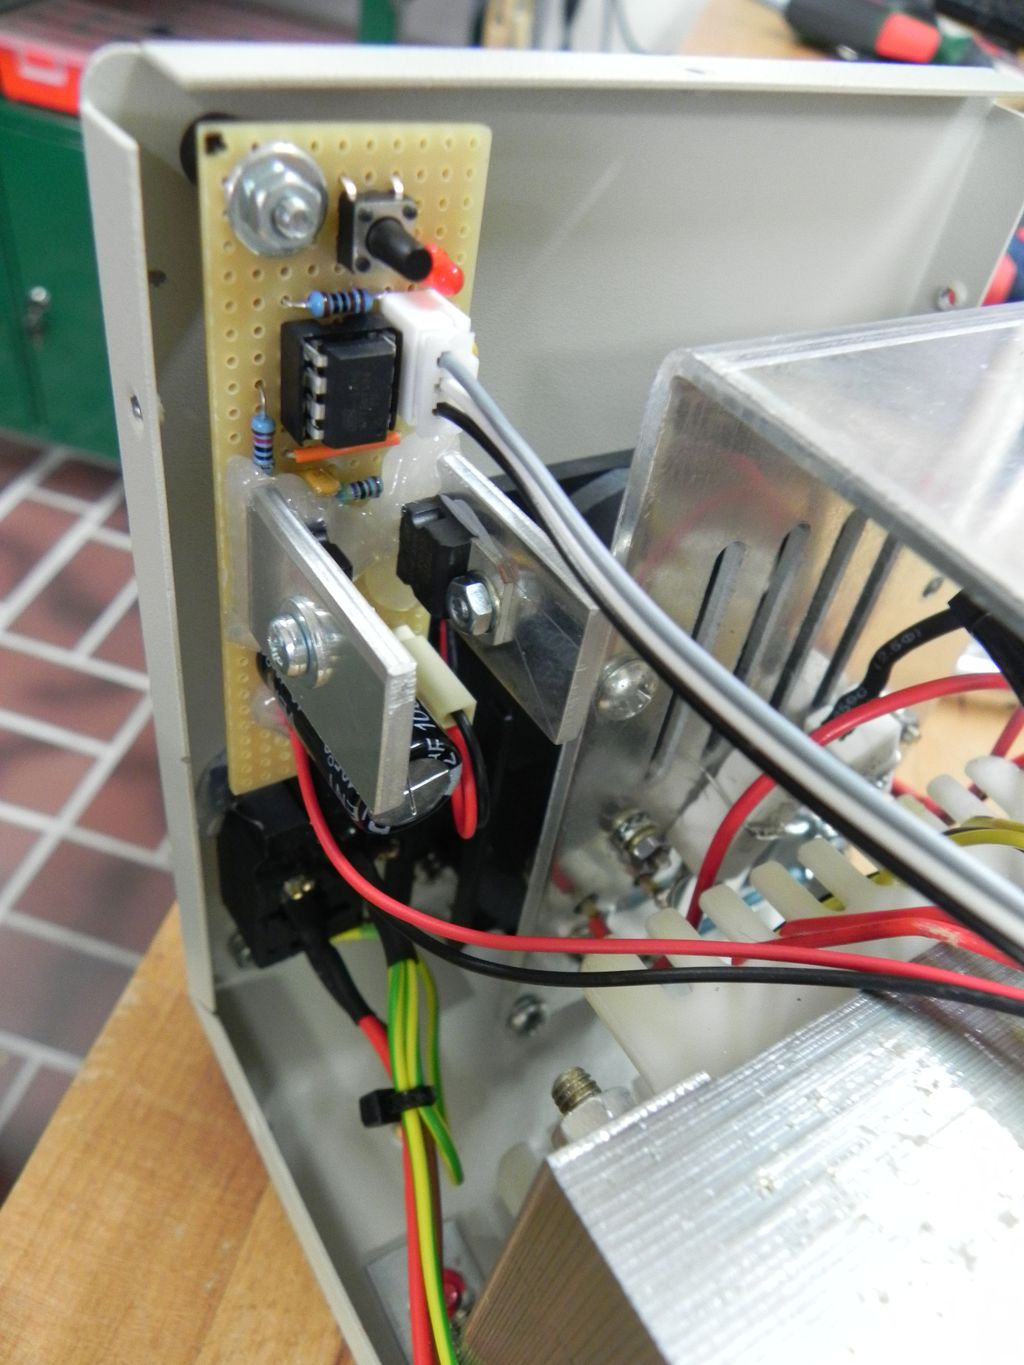 Fan-controller for the APS 3005D bench power supply